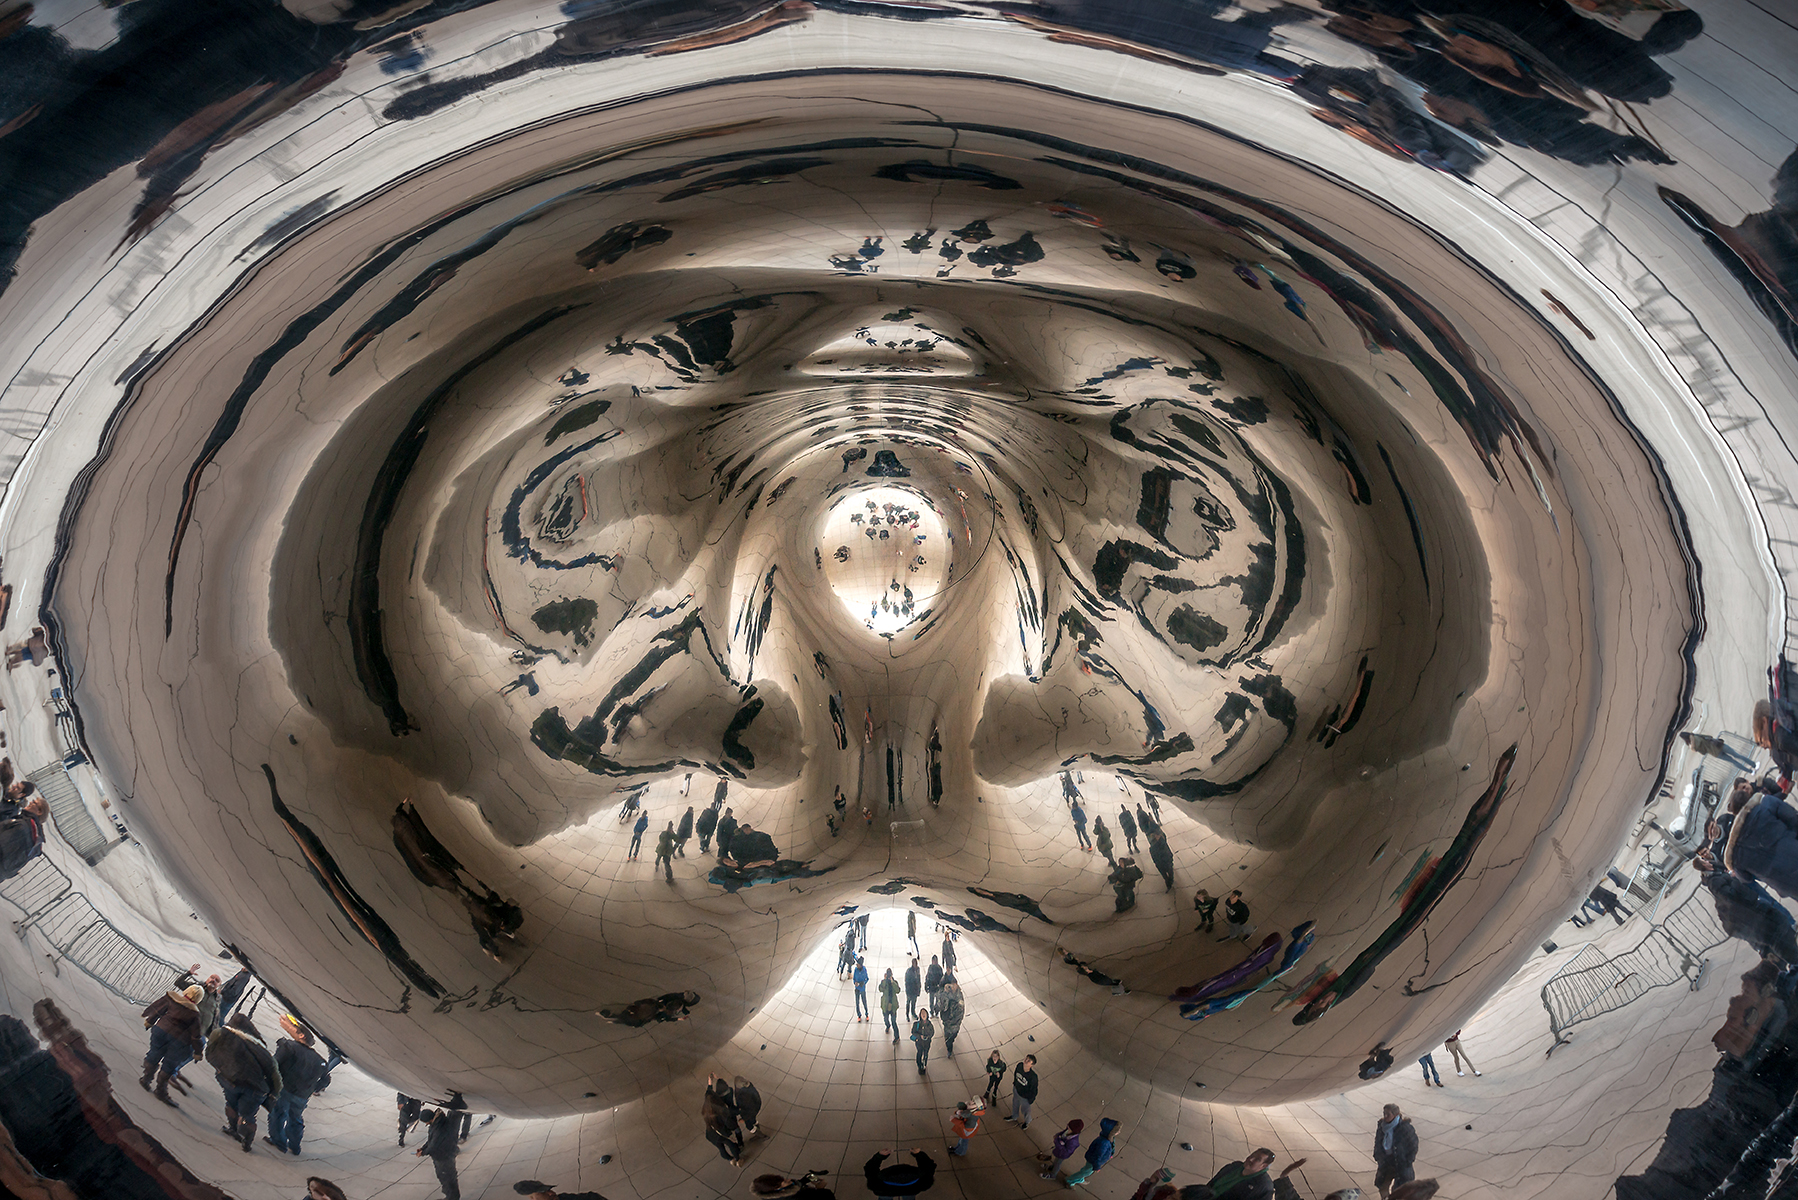 Cloud gate nortigo MR